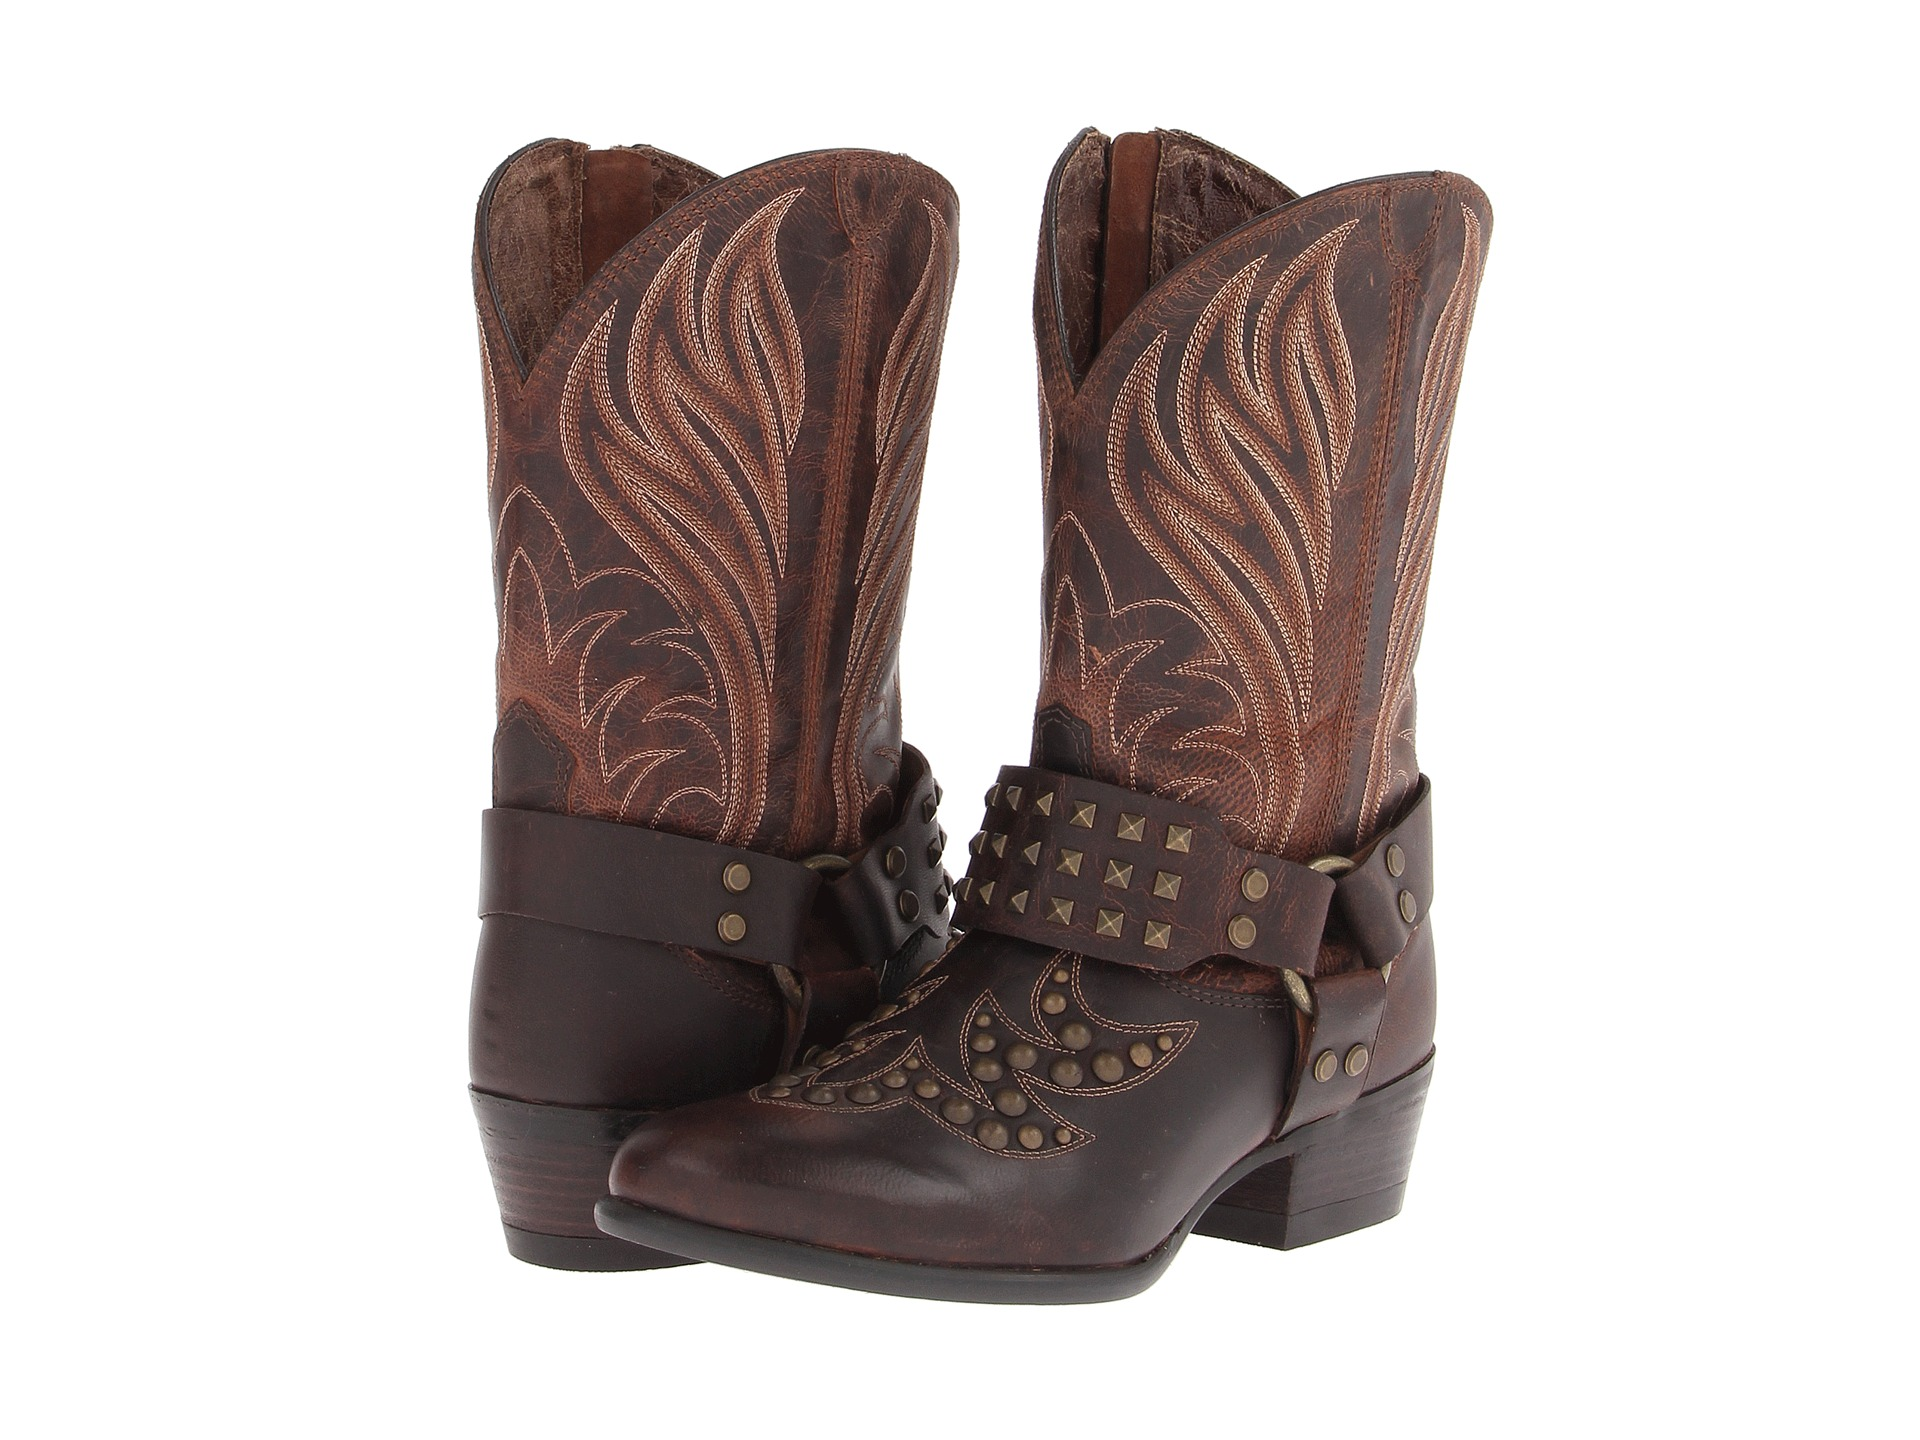 Stylish western boots for ladies